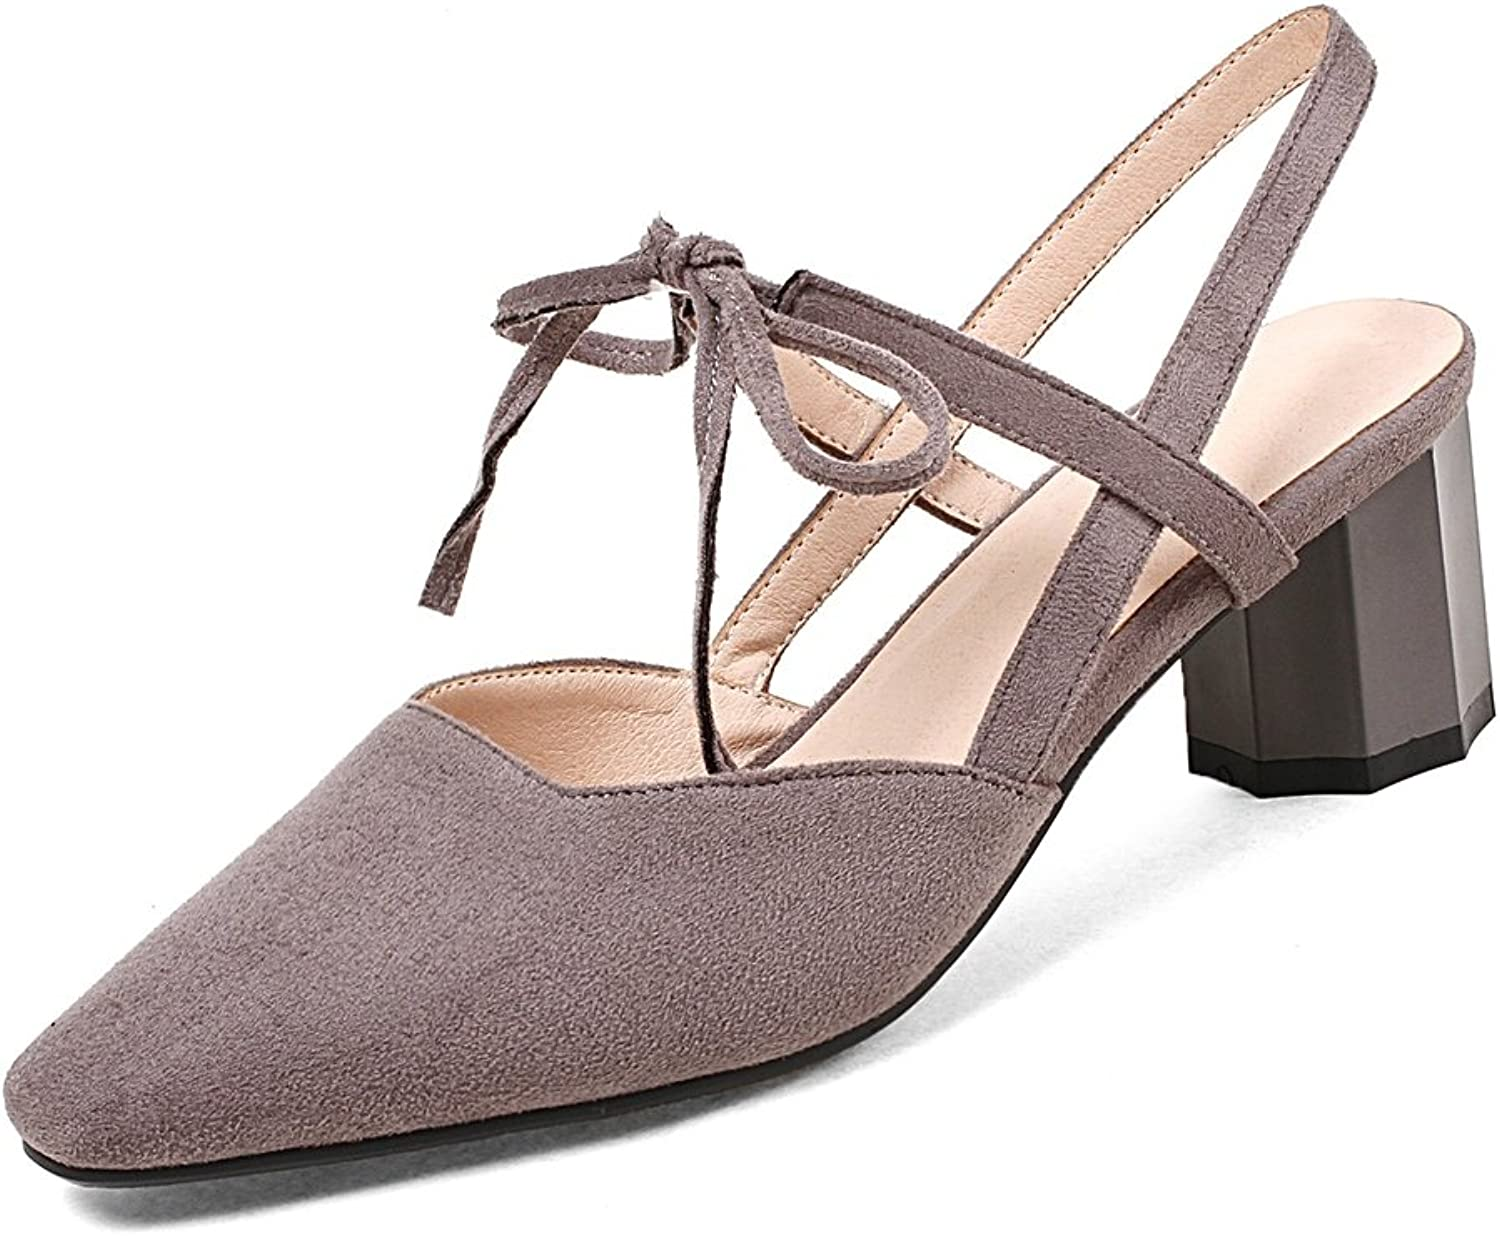 DecoStain Women's Sweet Suqare Toe Slingbacks Lace-up High Chunky Heels Working Wedding Pumps shoes